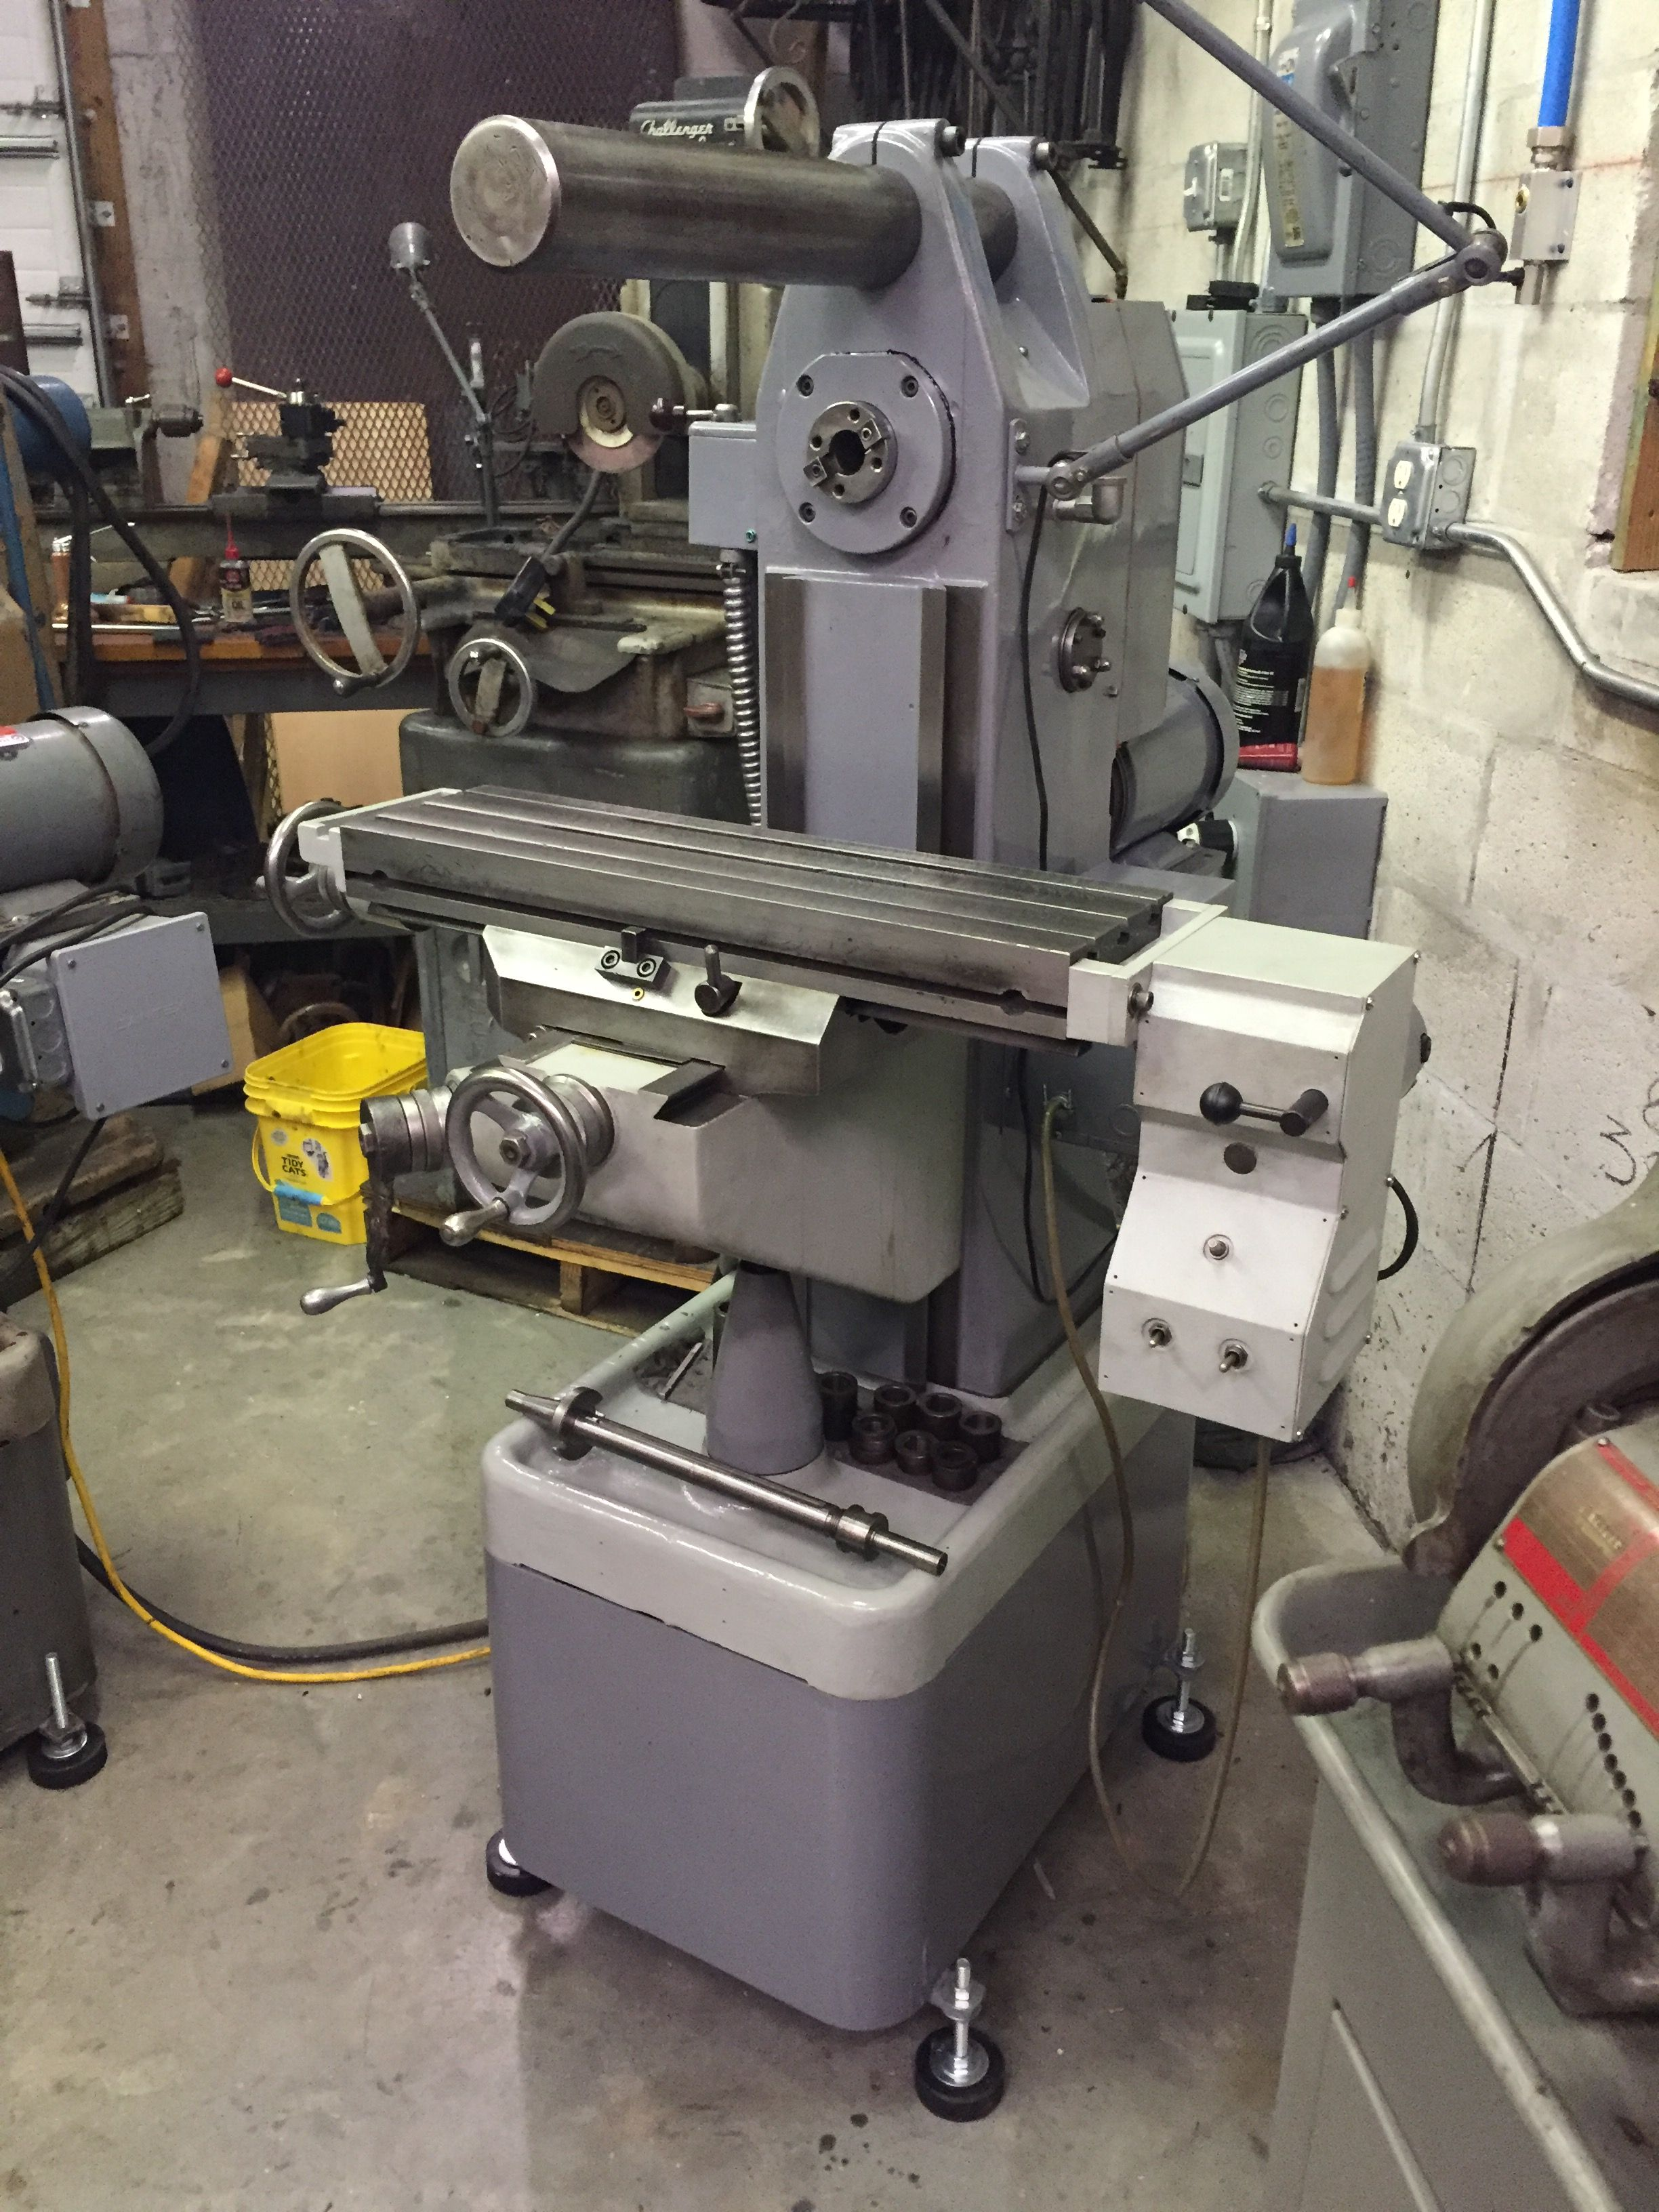 Restored Rockwell Horizontal Mill. | Machine Shop | Pinterest | Machine tools and Milling machine